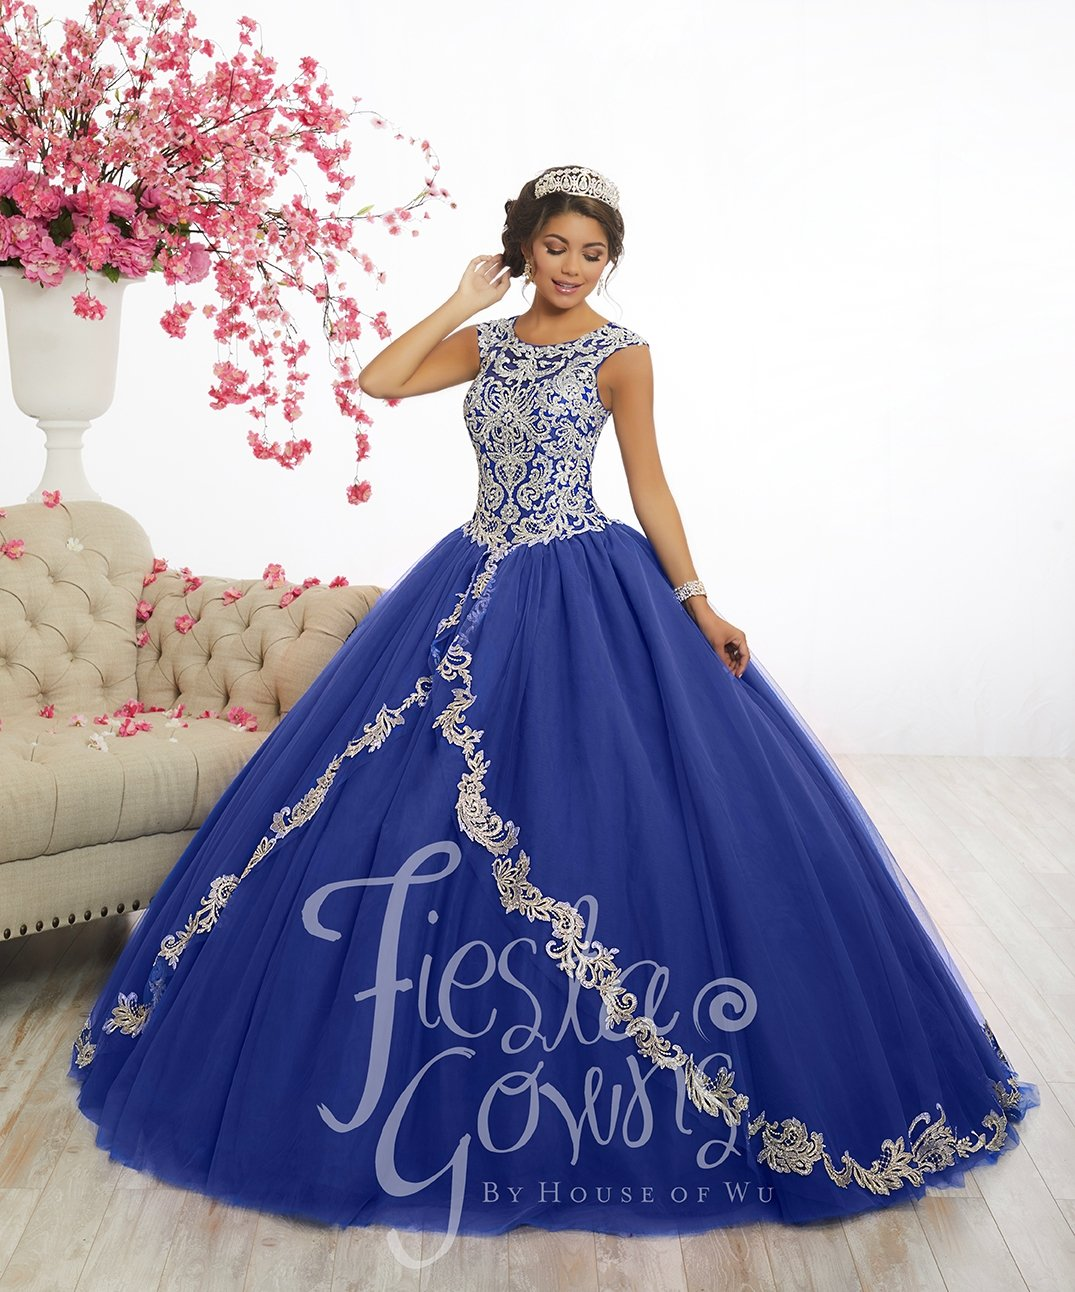 773039f851 Lace Appliqued Quinceanera Dress by Fiesta Gowns 56336 in 2019 ...